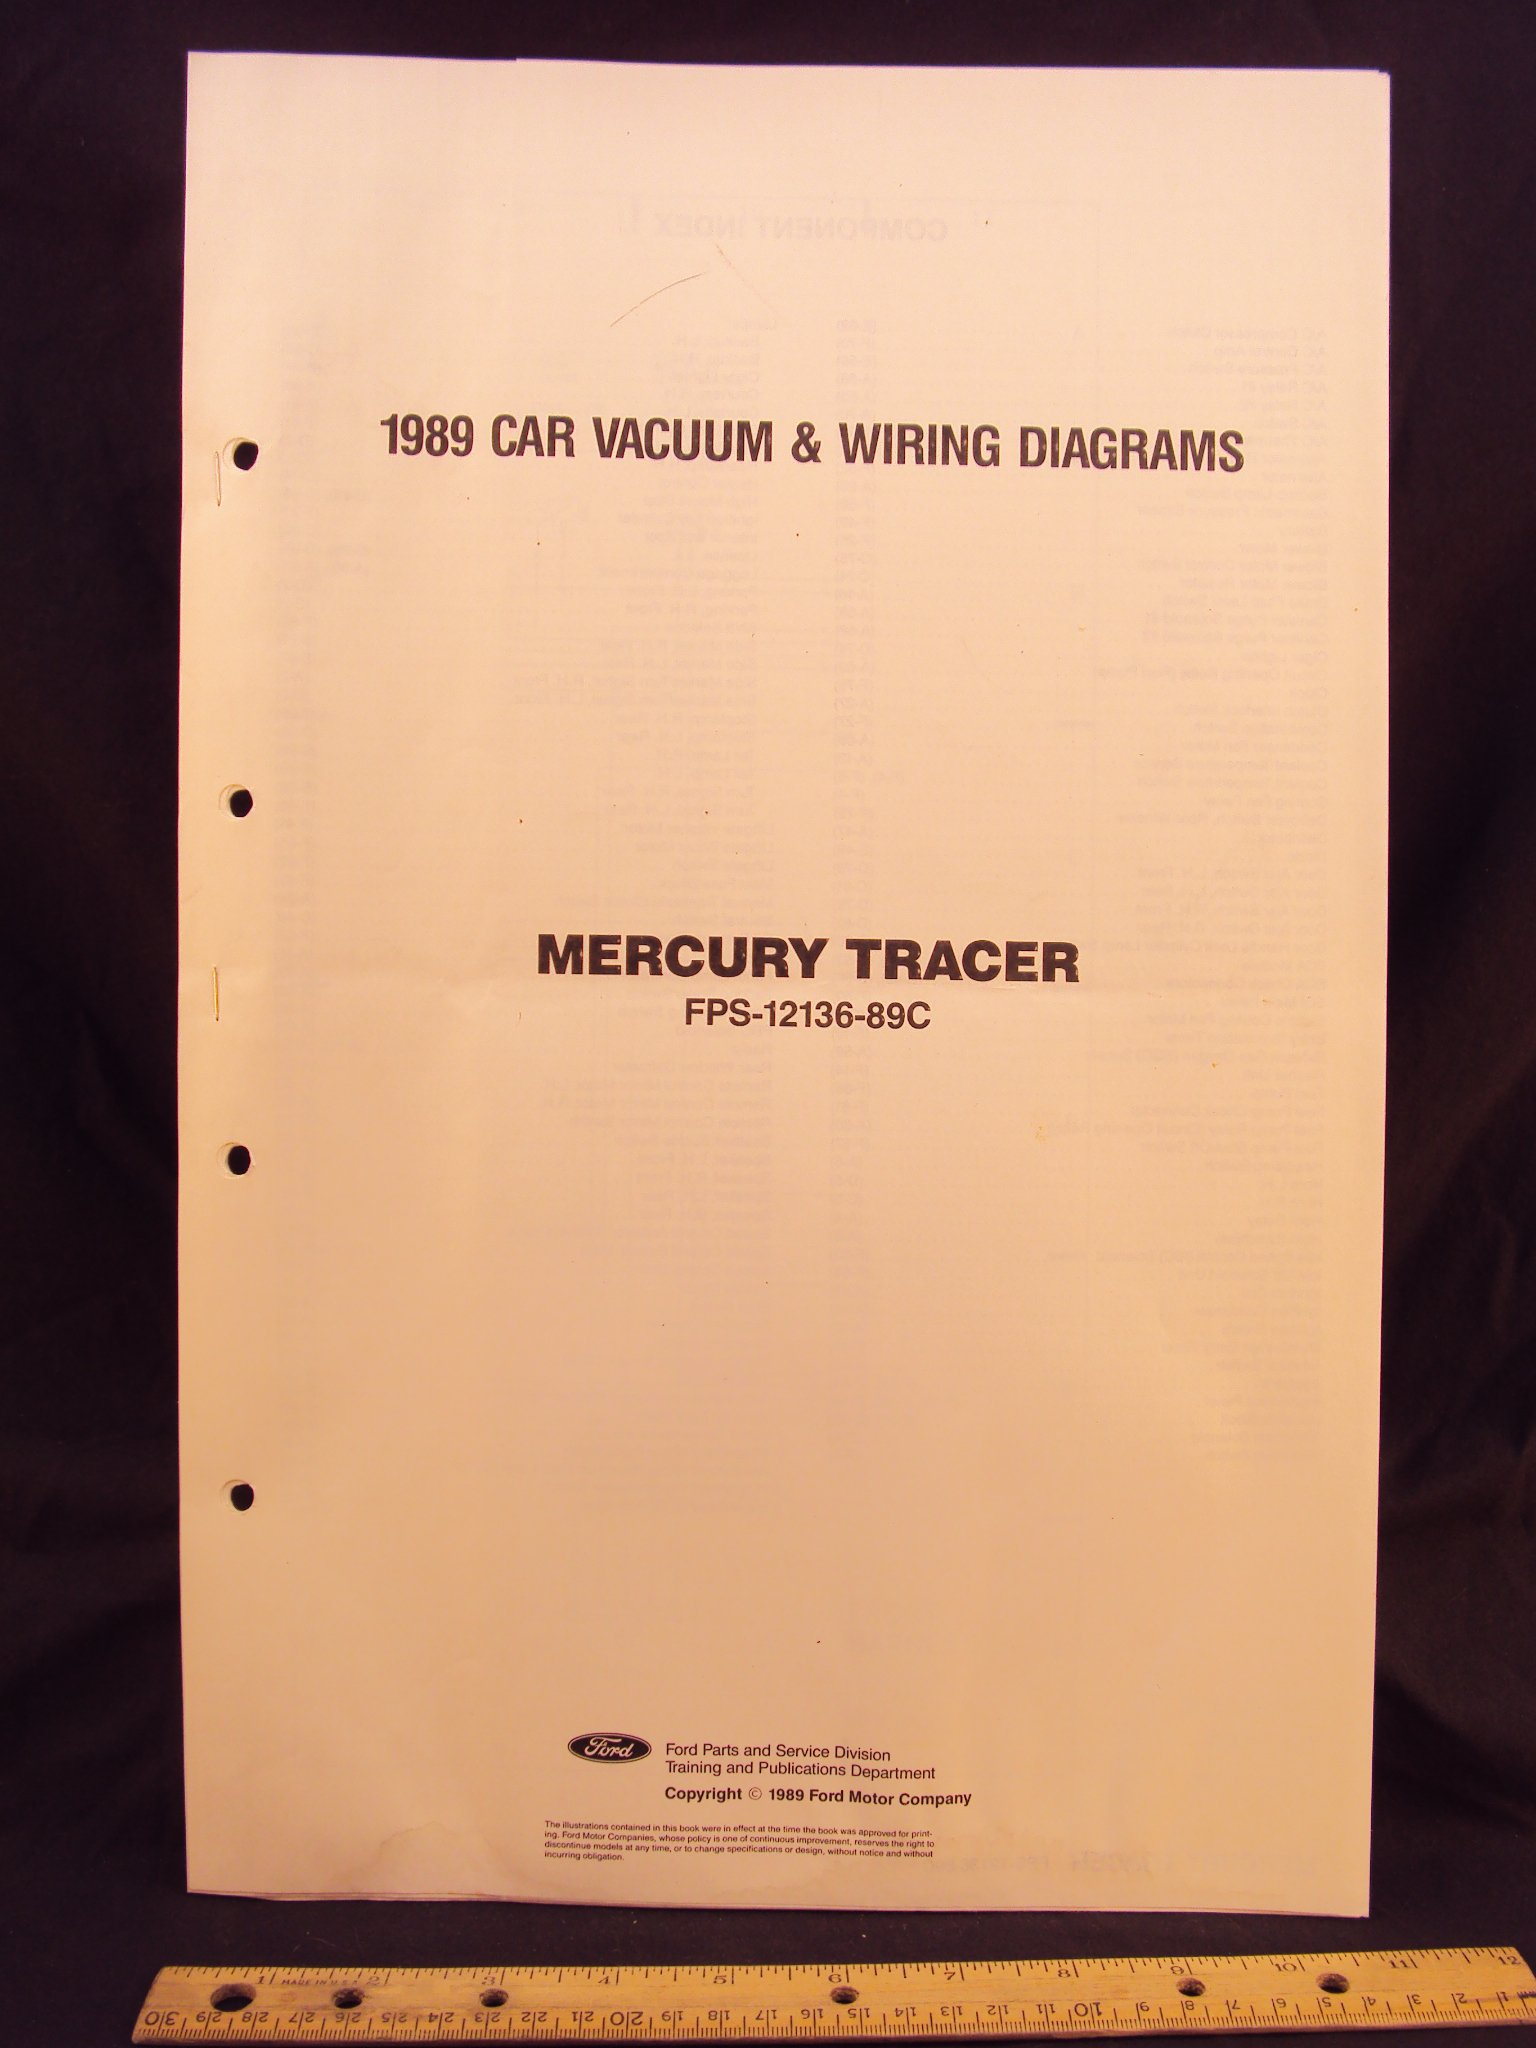 1989 Mercury Tracer Wiring Diagram Auto Electrical Buick Reatta Diagrams Schematics Ford Flywheel